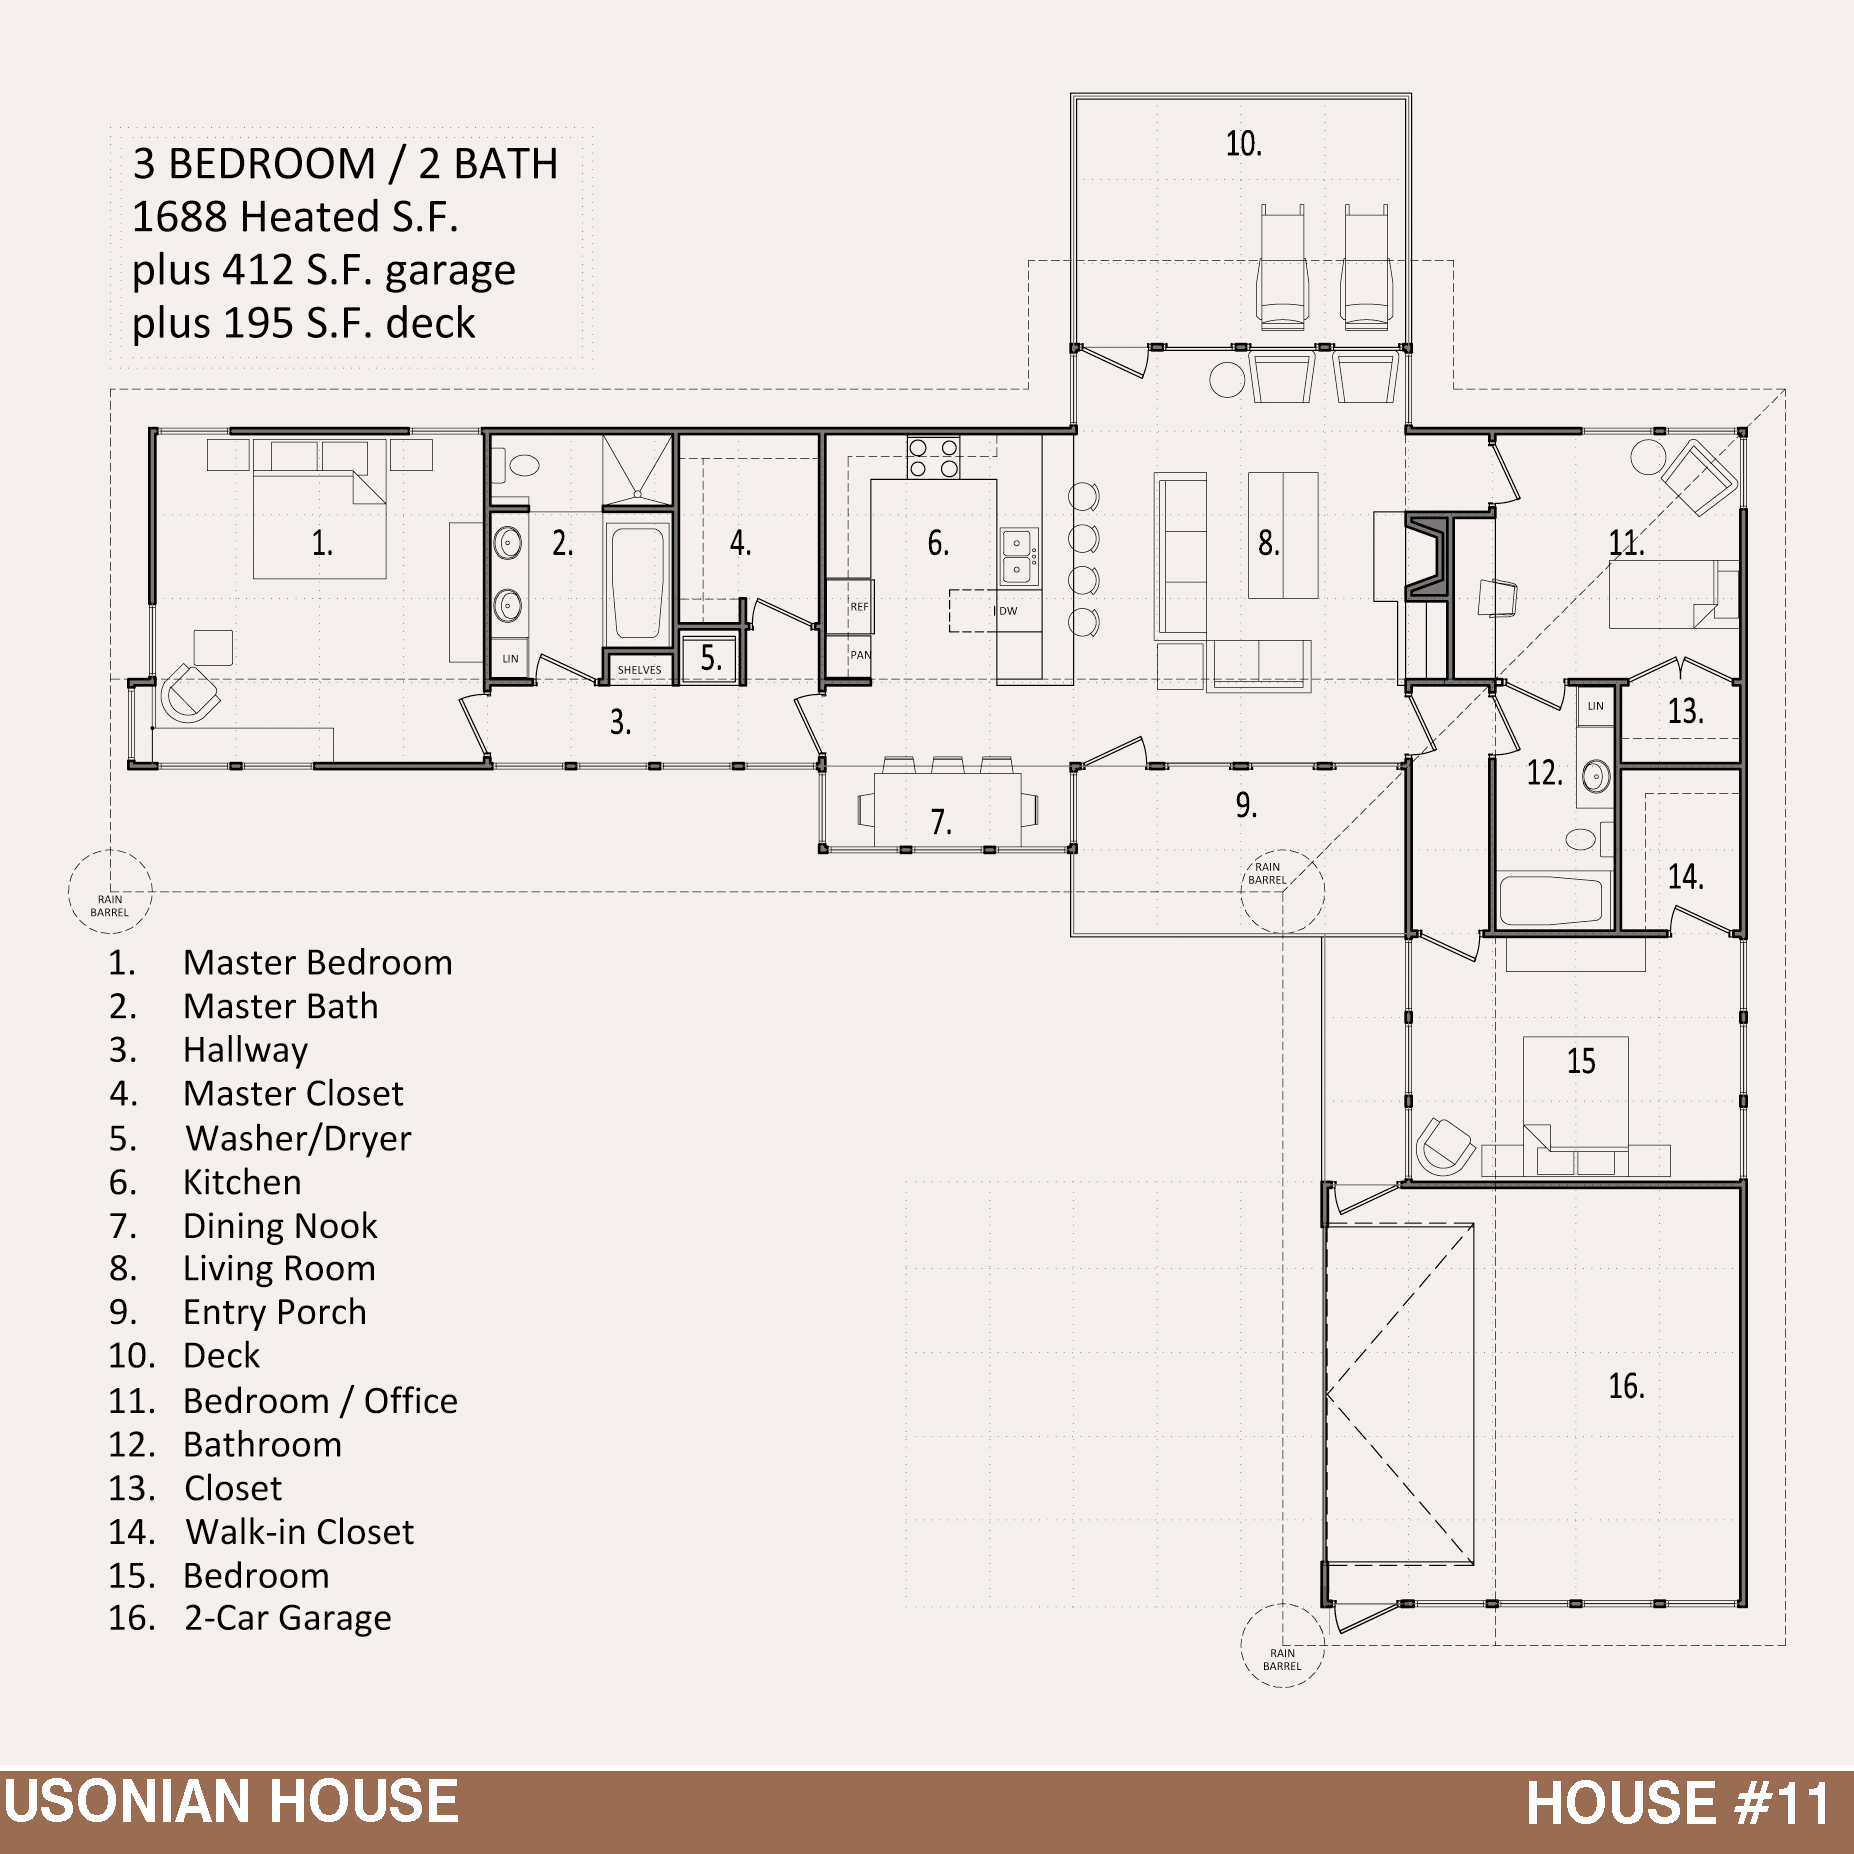 Usonian on pinterest frank lloyd wright frank lloyd for Frank lloyd wright style house plans